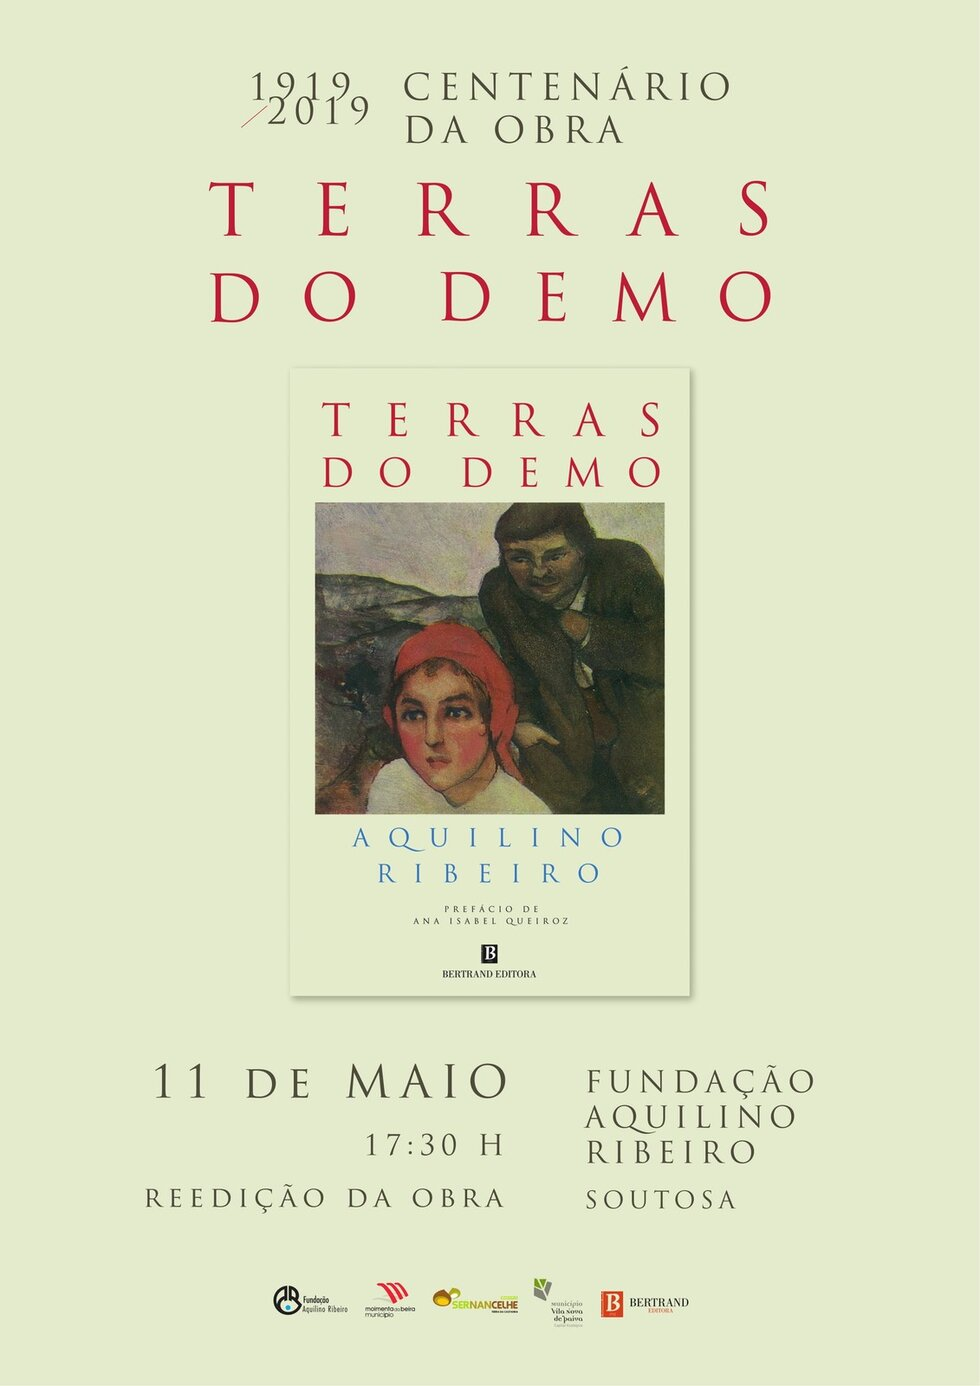 Terras do demo  cartaz  1 980 2500